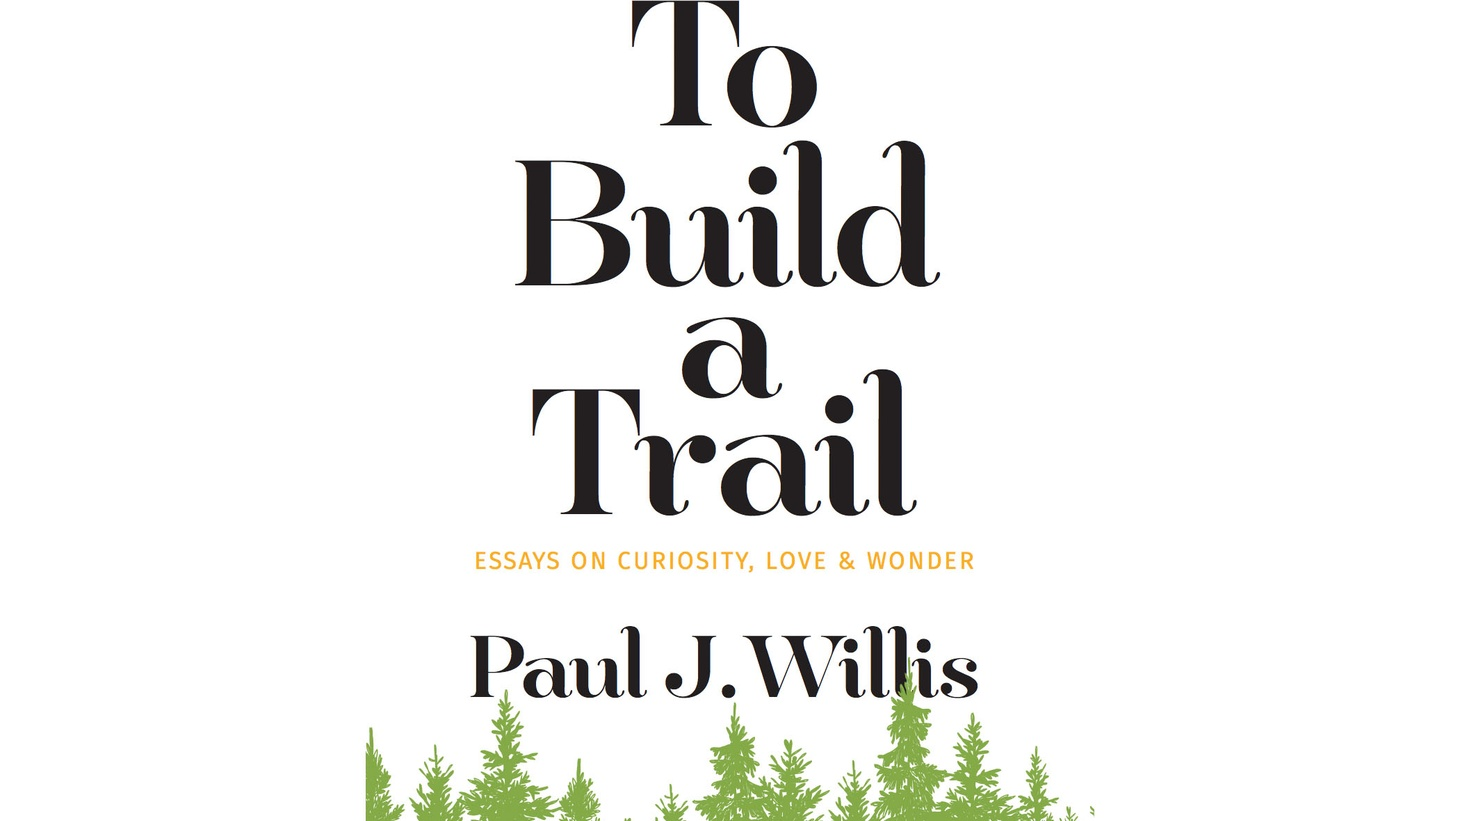 Paul J. Willis' book is a collection of personal essays. The title story is about how he grieved the loss of his mother.